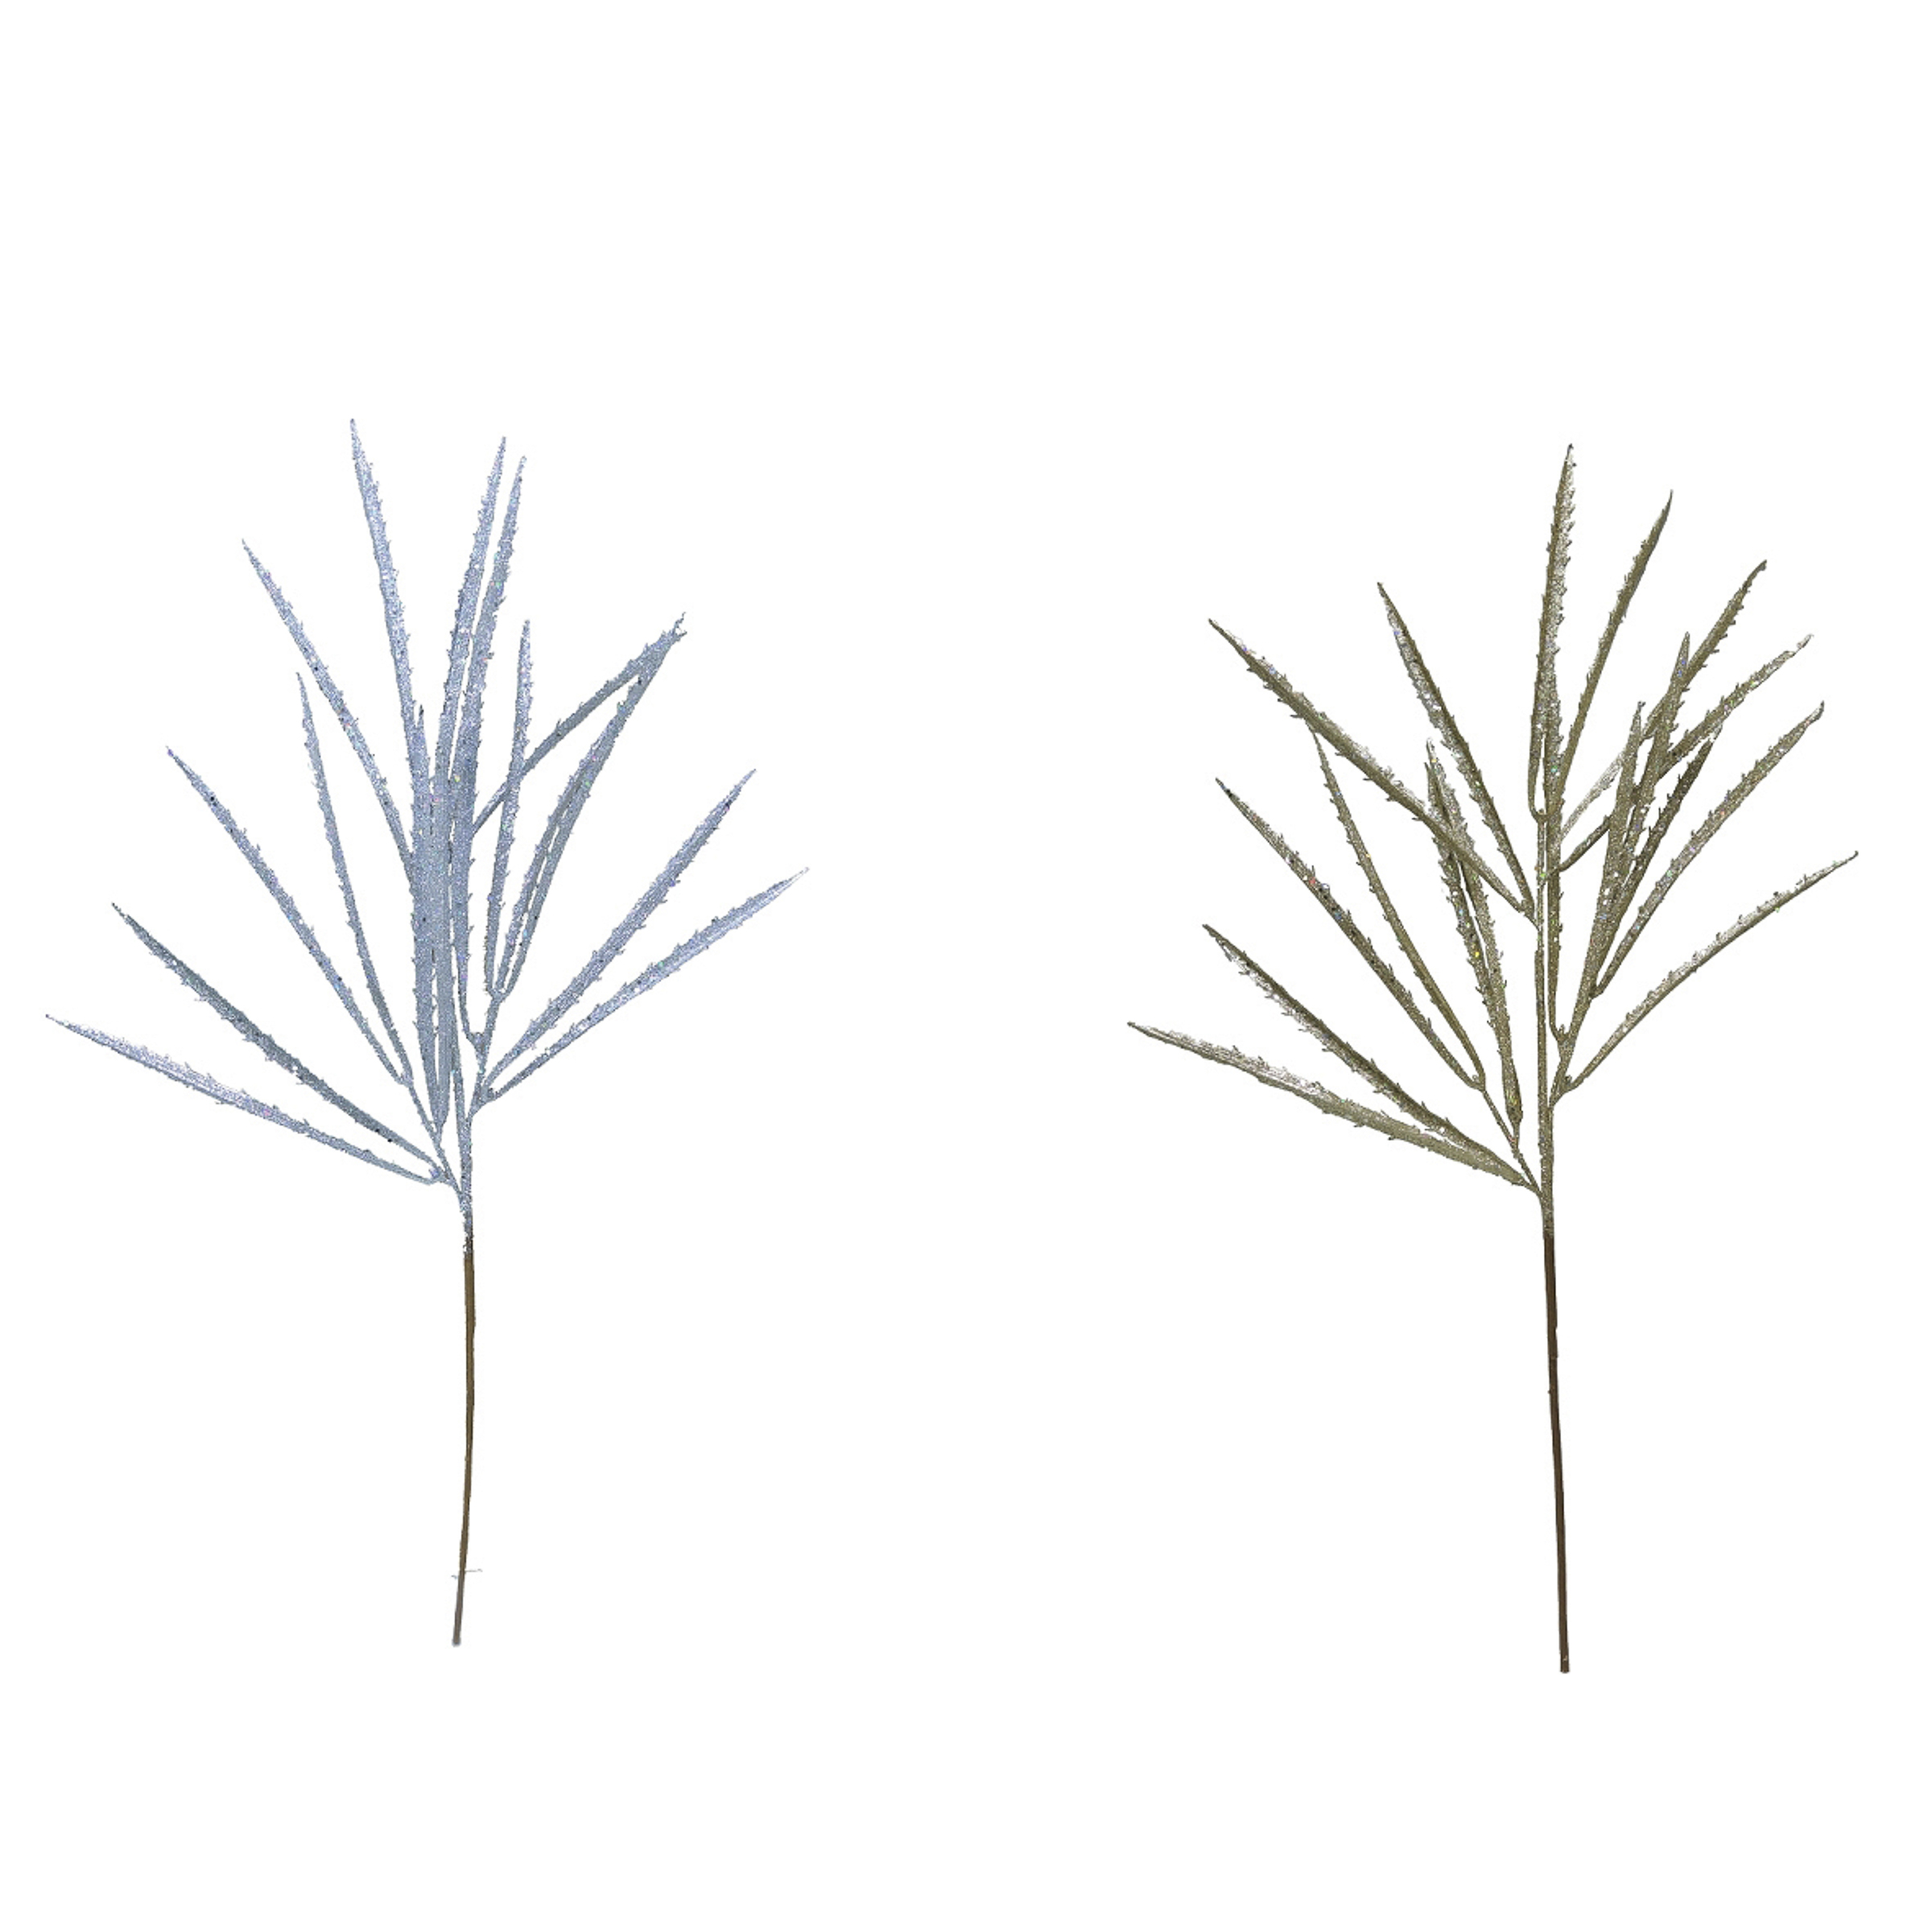 Darice Glitter Spikey Grass Spray 11 X 27 Inches, 2 Assorted Colors